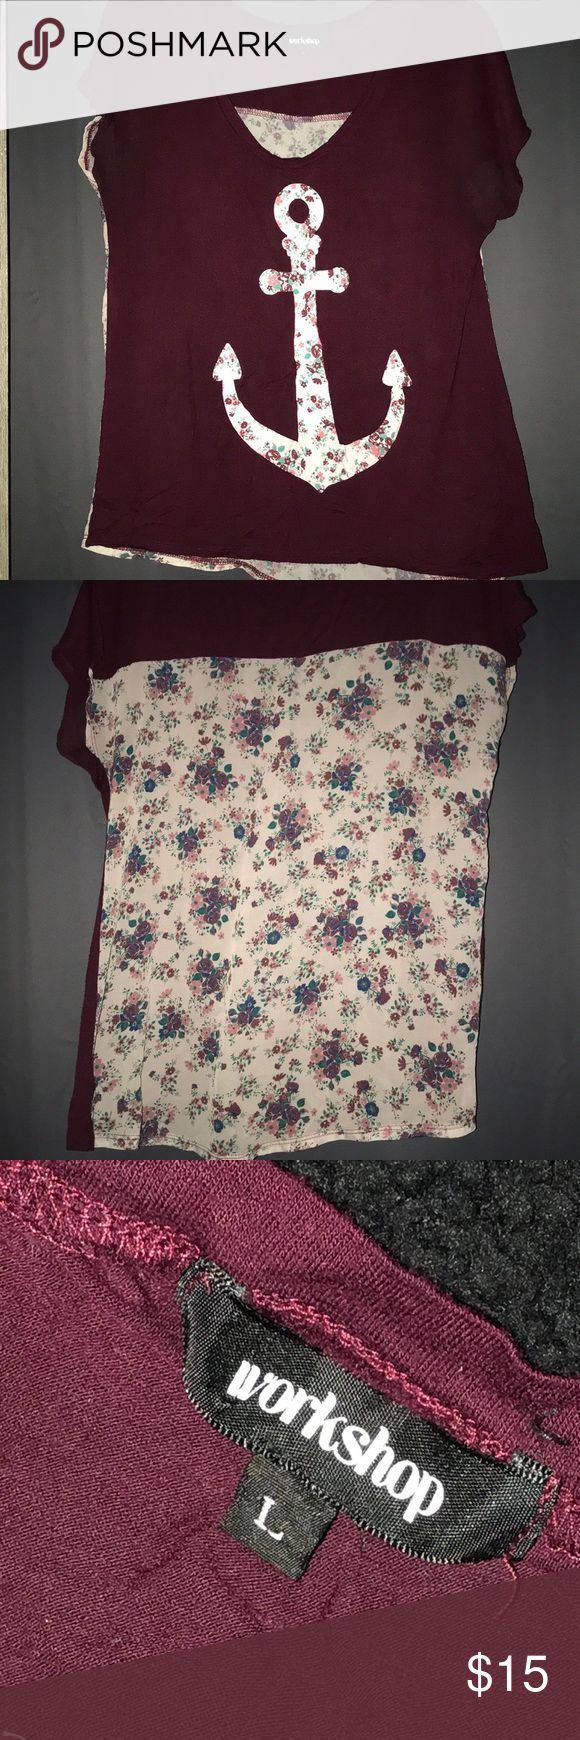 Zumiez Workshop floral anchor shirt 🌺⚓️ Super flowy fun shirt! Maroon color with a floral anchor and floral chiffon back. Zumiez Tops Tees - Short Sleeve